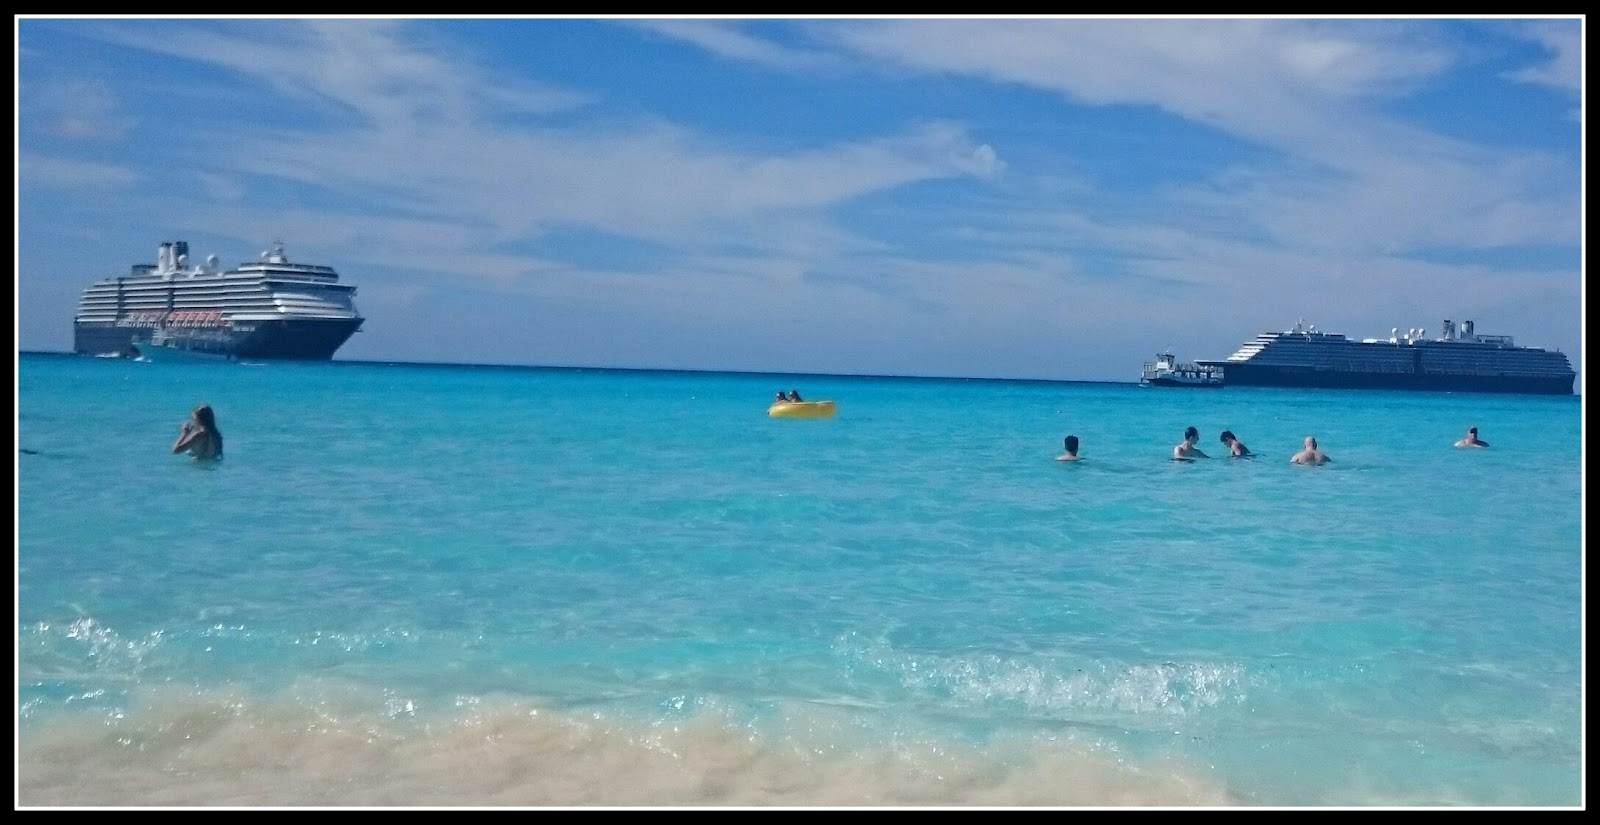 Bahamas-view-from-the-beach.jpg